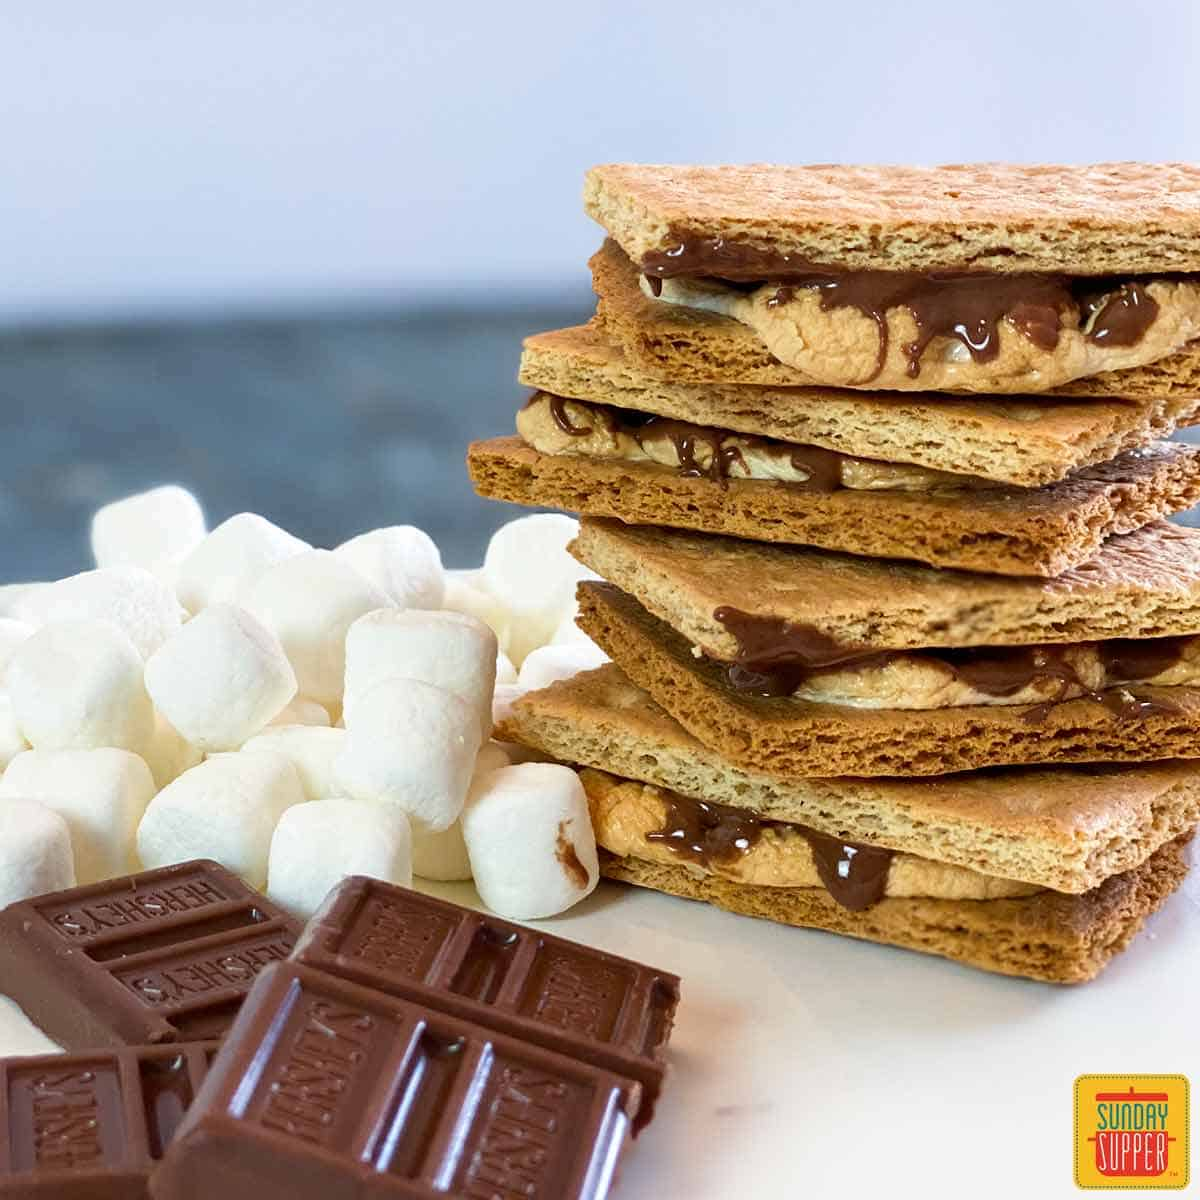 Air fryer s'mores recipe in a stack next to chocolate pieces and mini marshmallows on a white surface